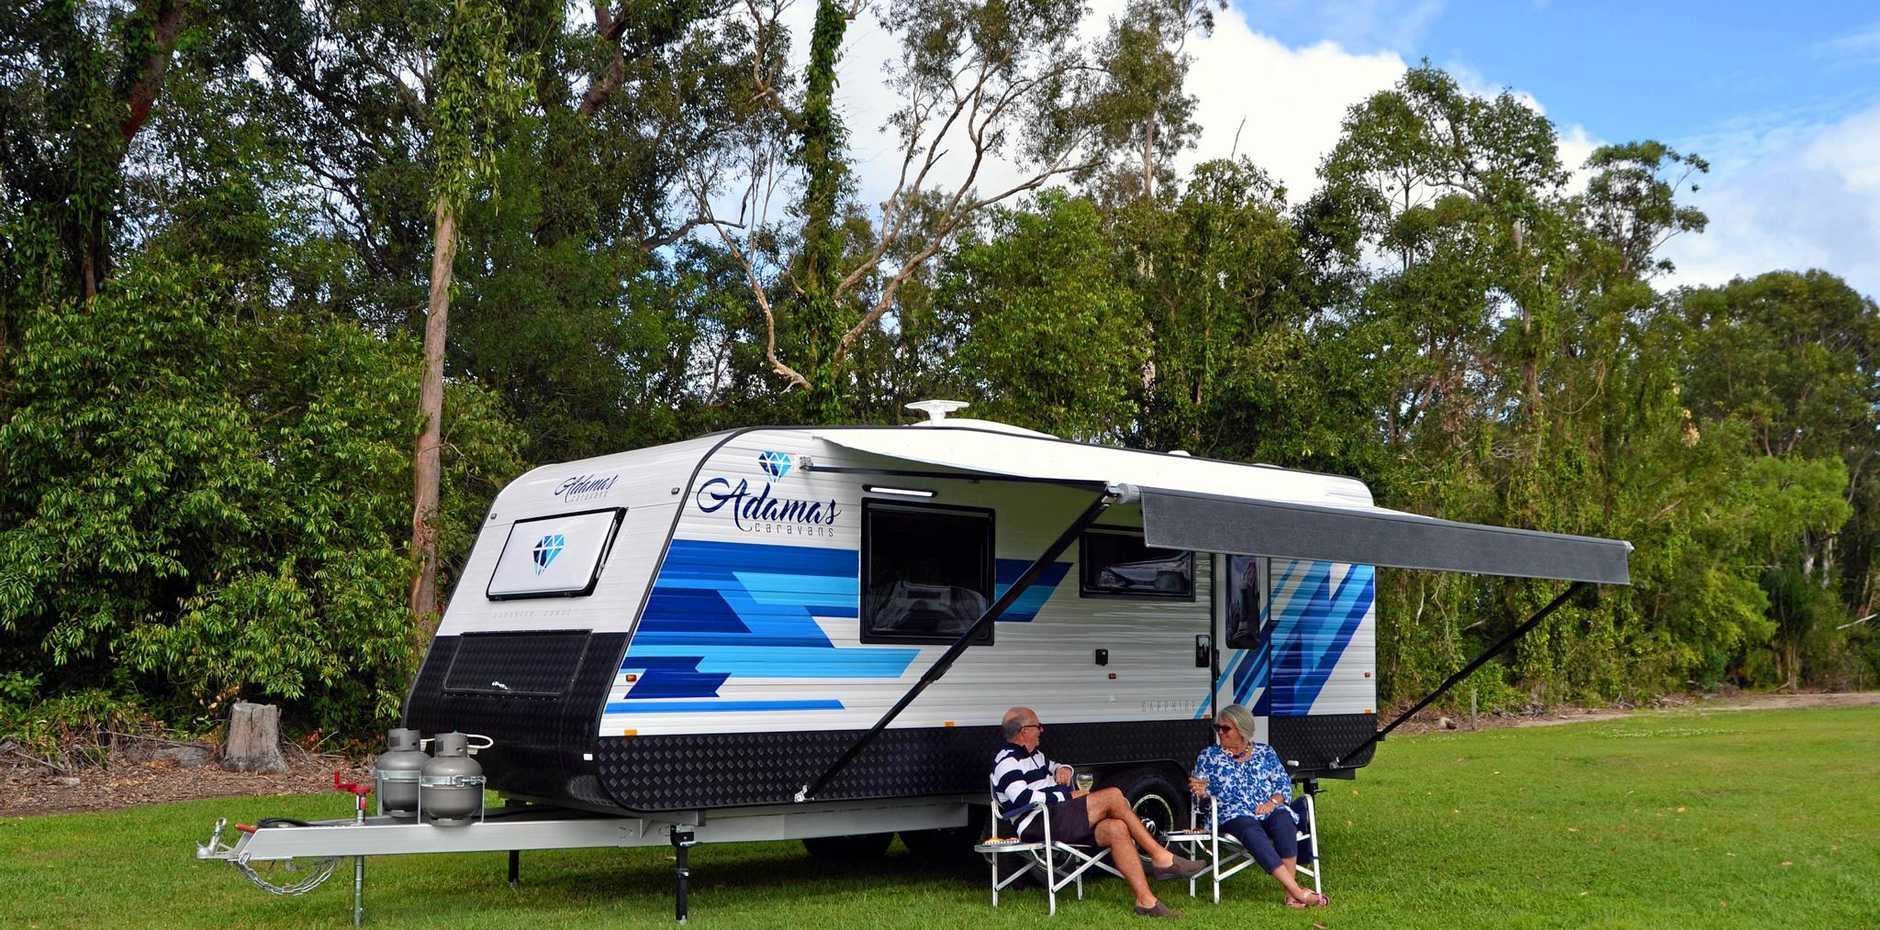 Caravanners and campers spend an average $152 a night in our region.